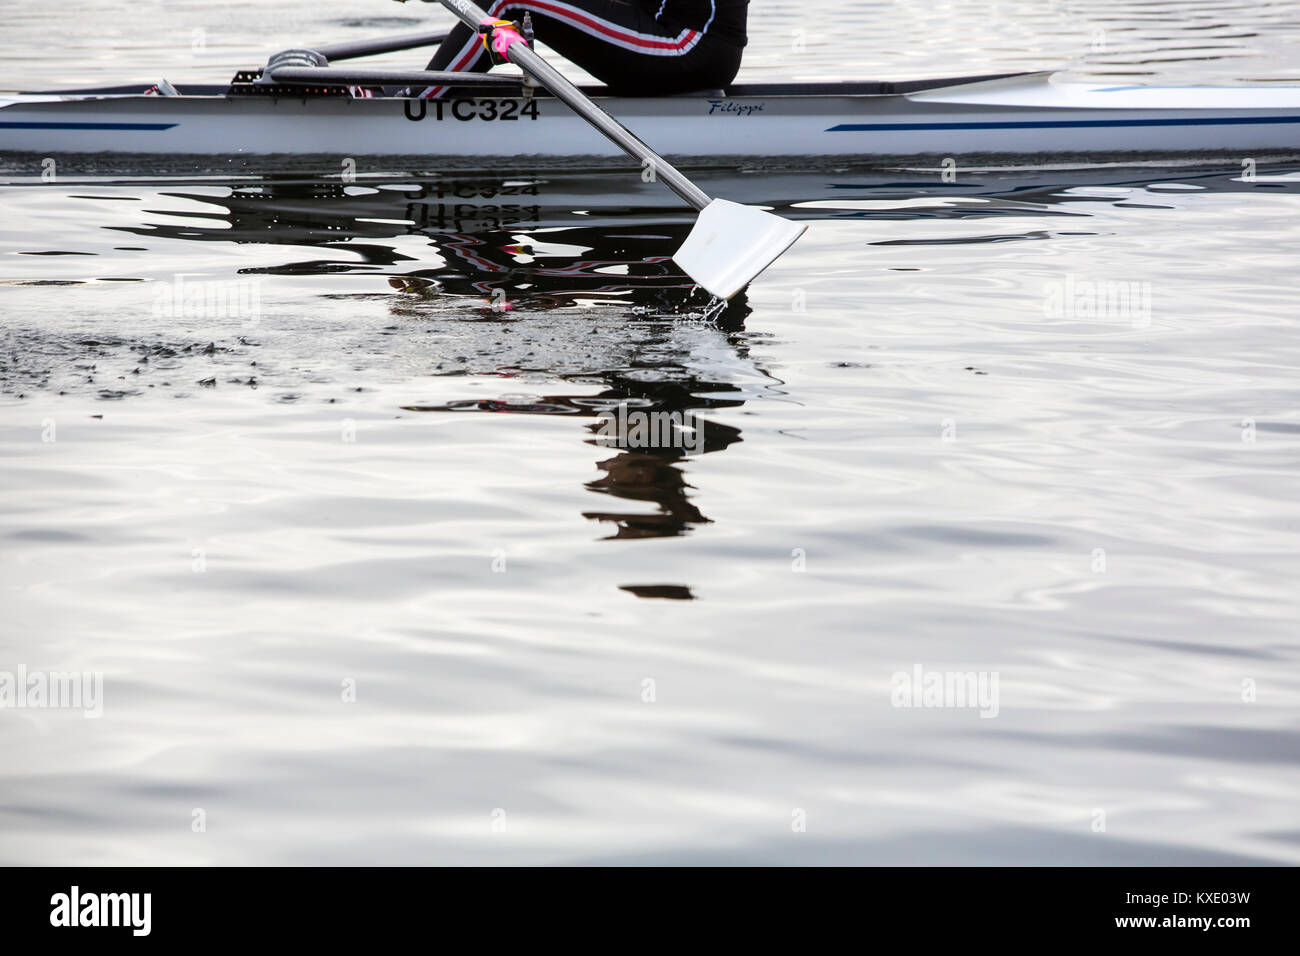 A single rower on a river skulling through the gently rippling water. - Stock Image